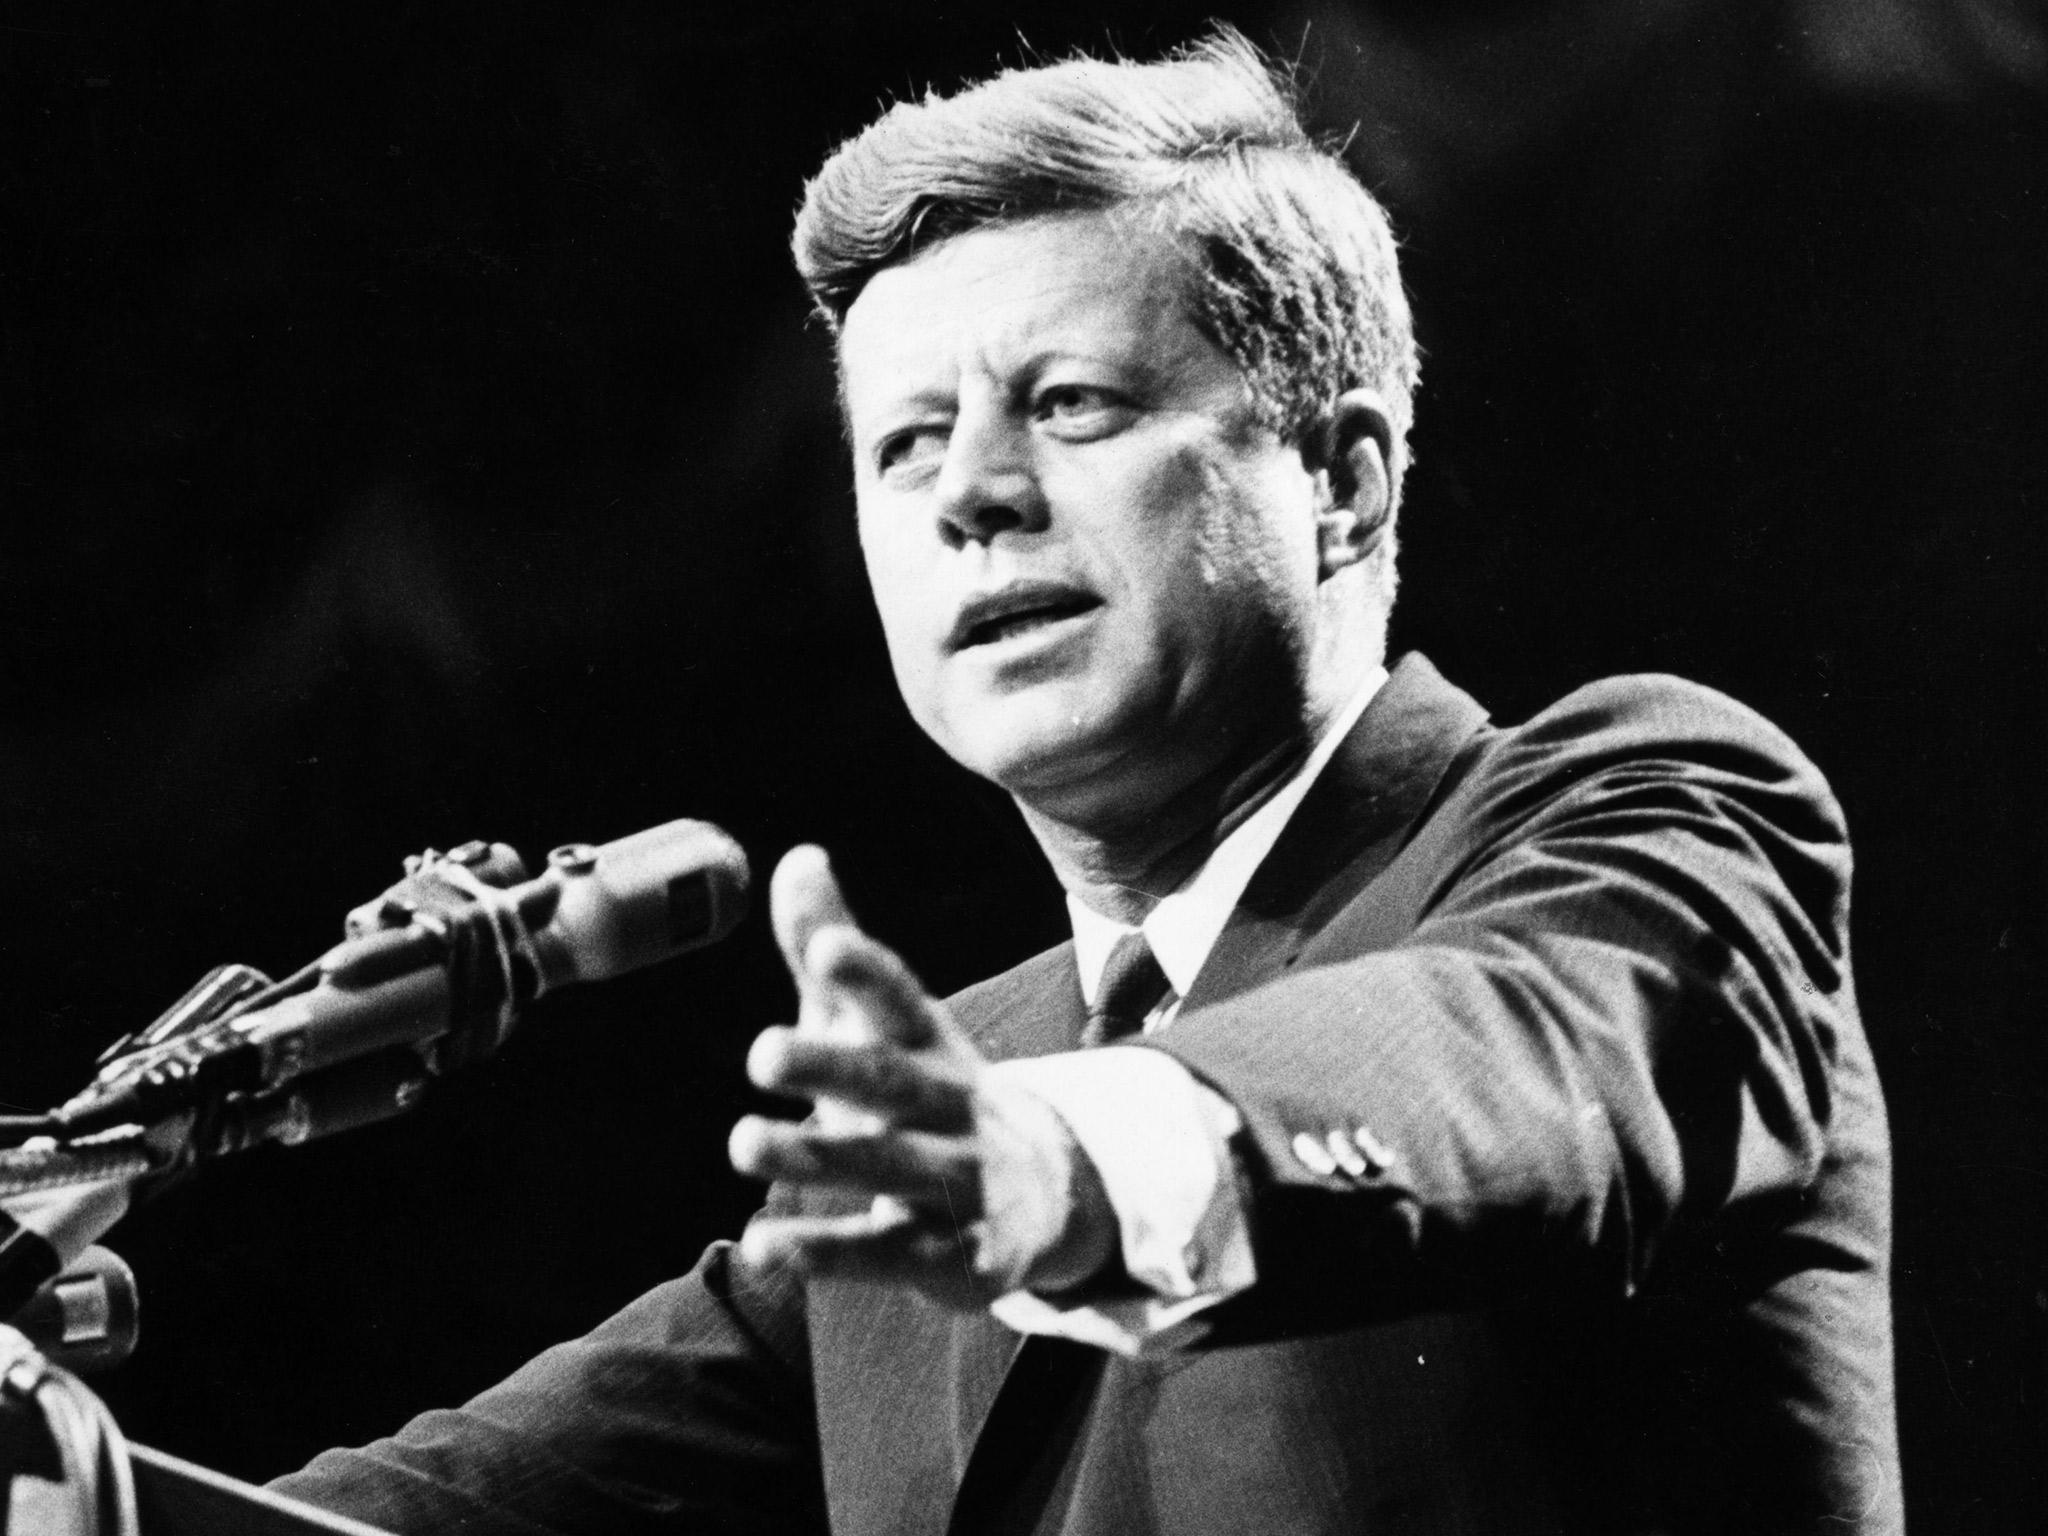 an analysis of john fitzgerald kennedy on president assassination This paper shall discuss on several time-tested conspiracy theories that explained the assassination of president john fitzgerald kennedy some of these theories include the reader digest (kgb) theory, cuban, the mafia, the us government, the zero game and the anti-greens theory.